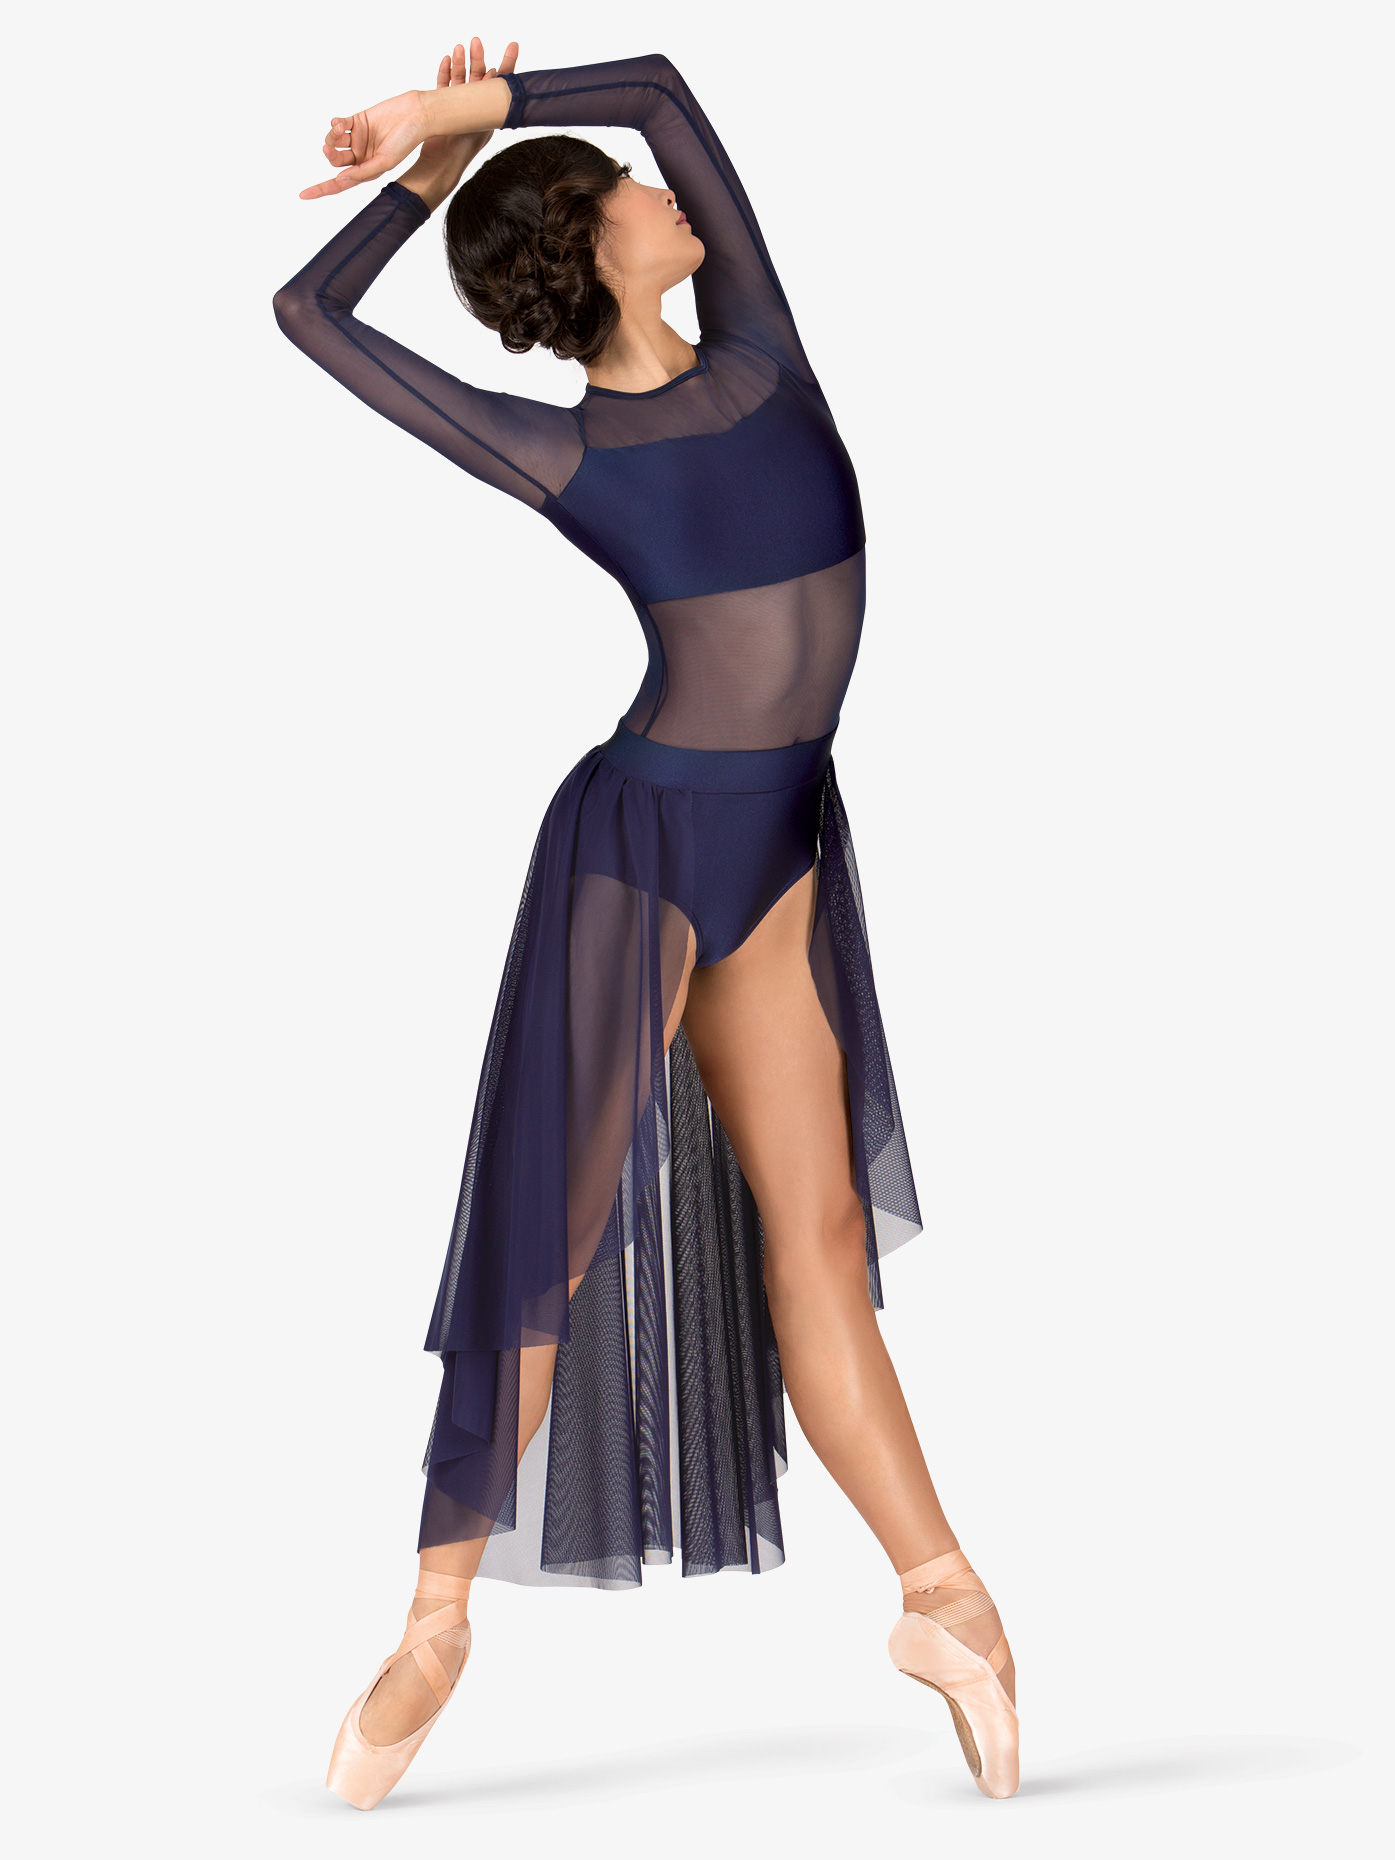 Double Platinum Adult Long Sleeve High-Low Dance Performance Dress N7316